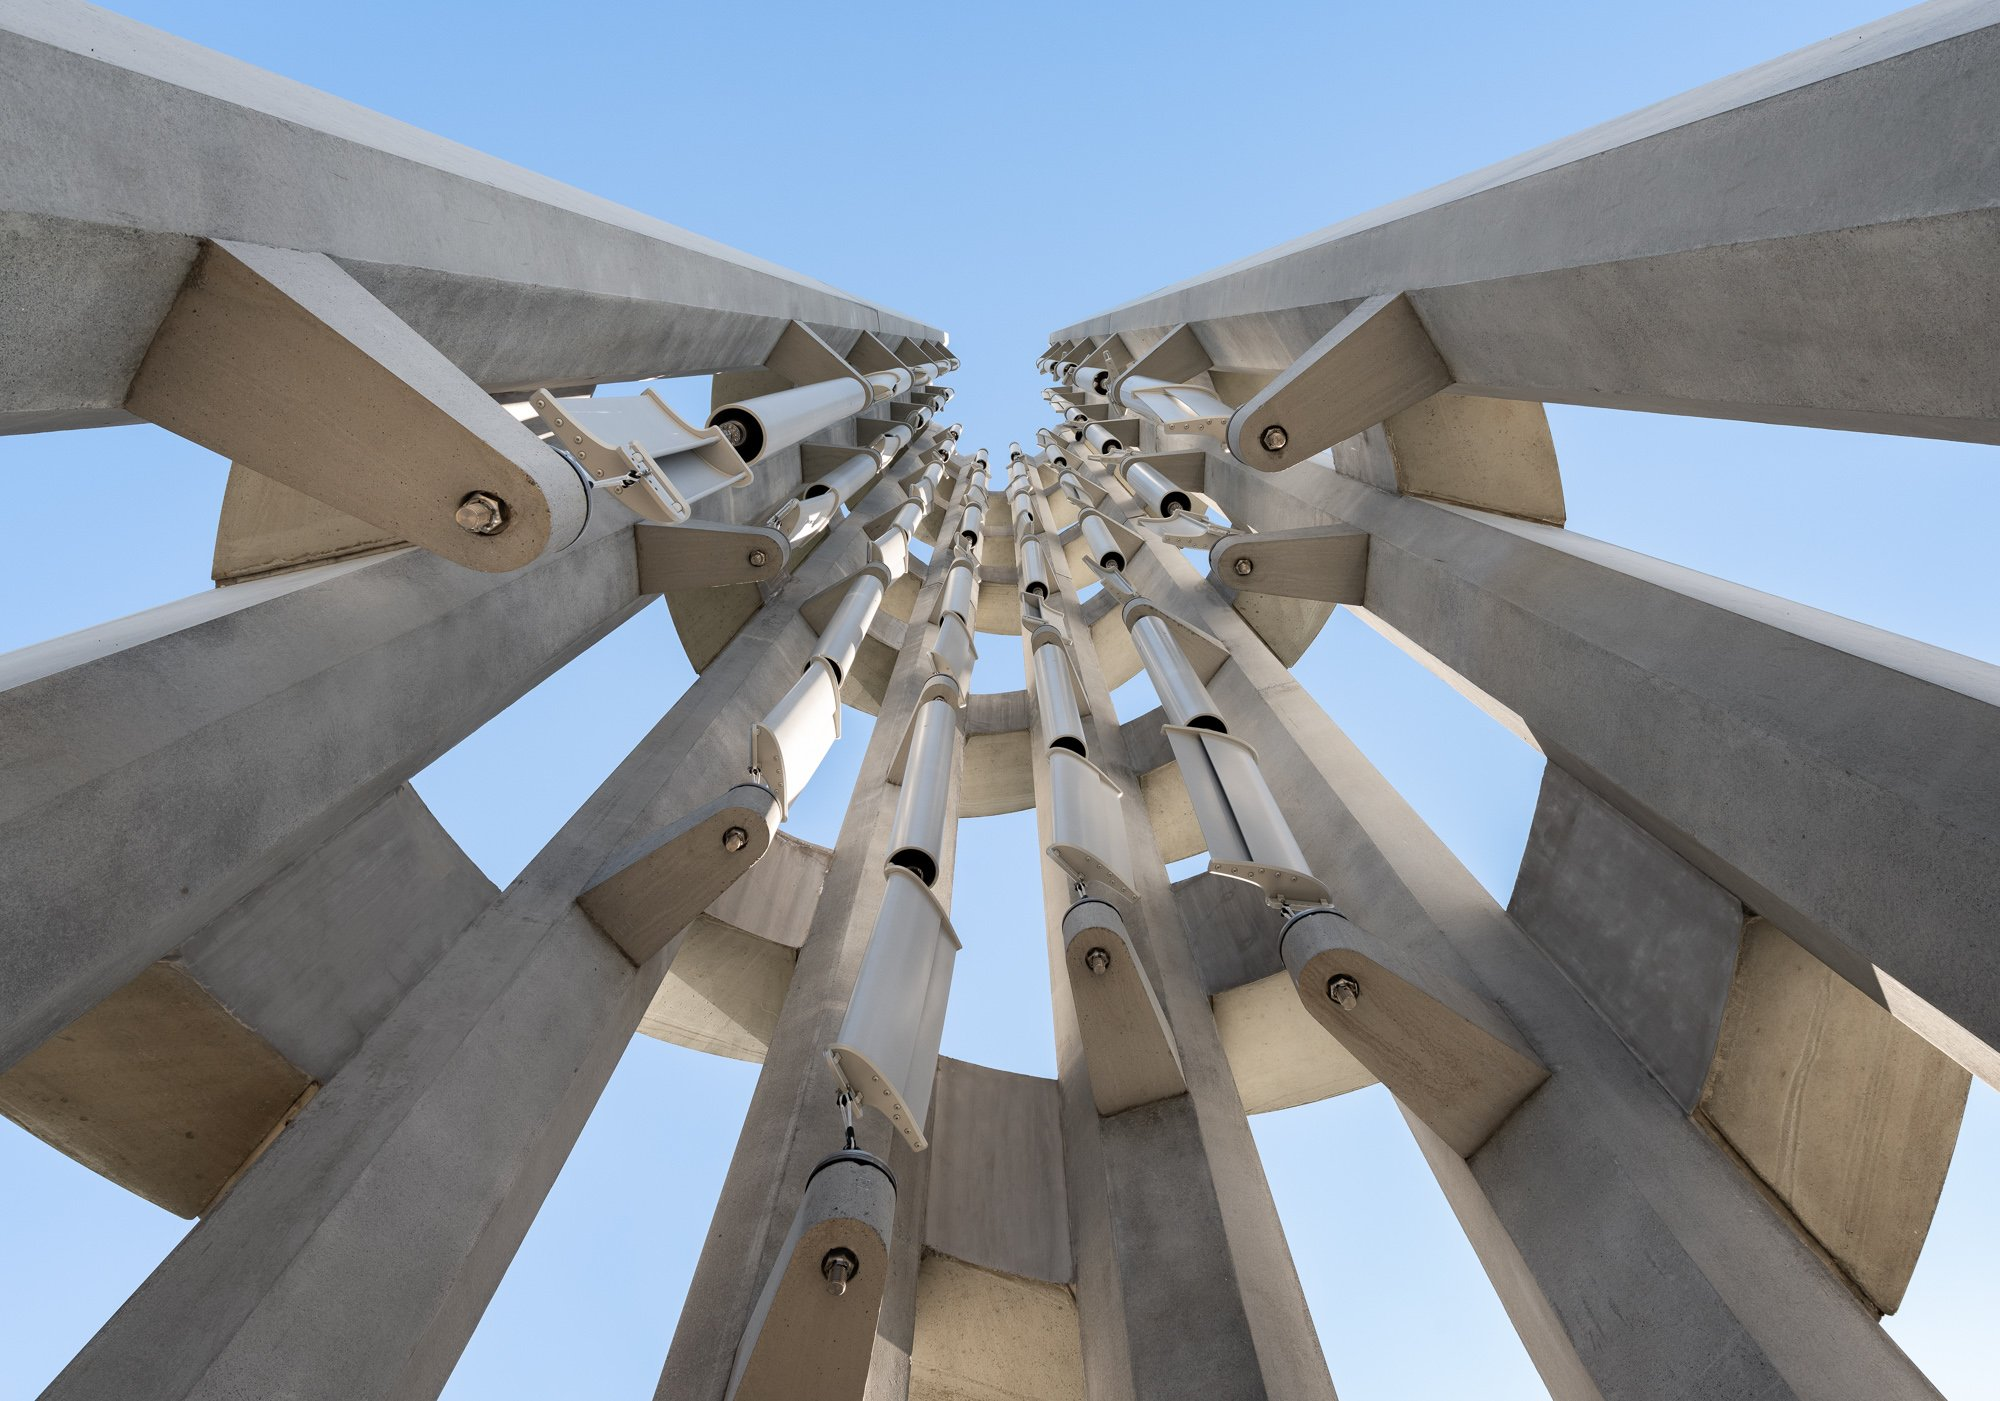 Tower of Voices - Paul Murdoch Architects - Photos by Eric Staudenmaier Photography